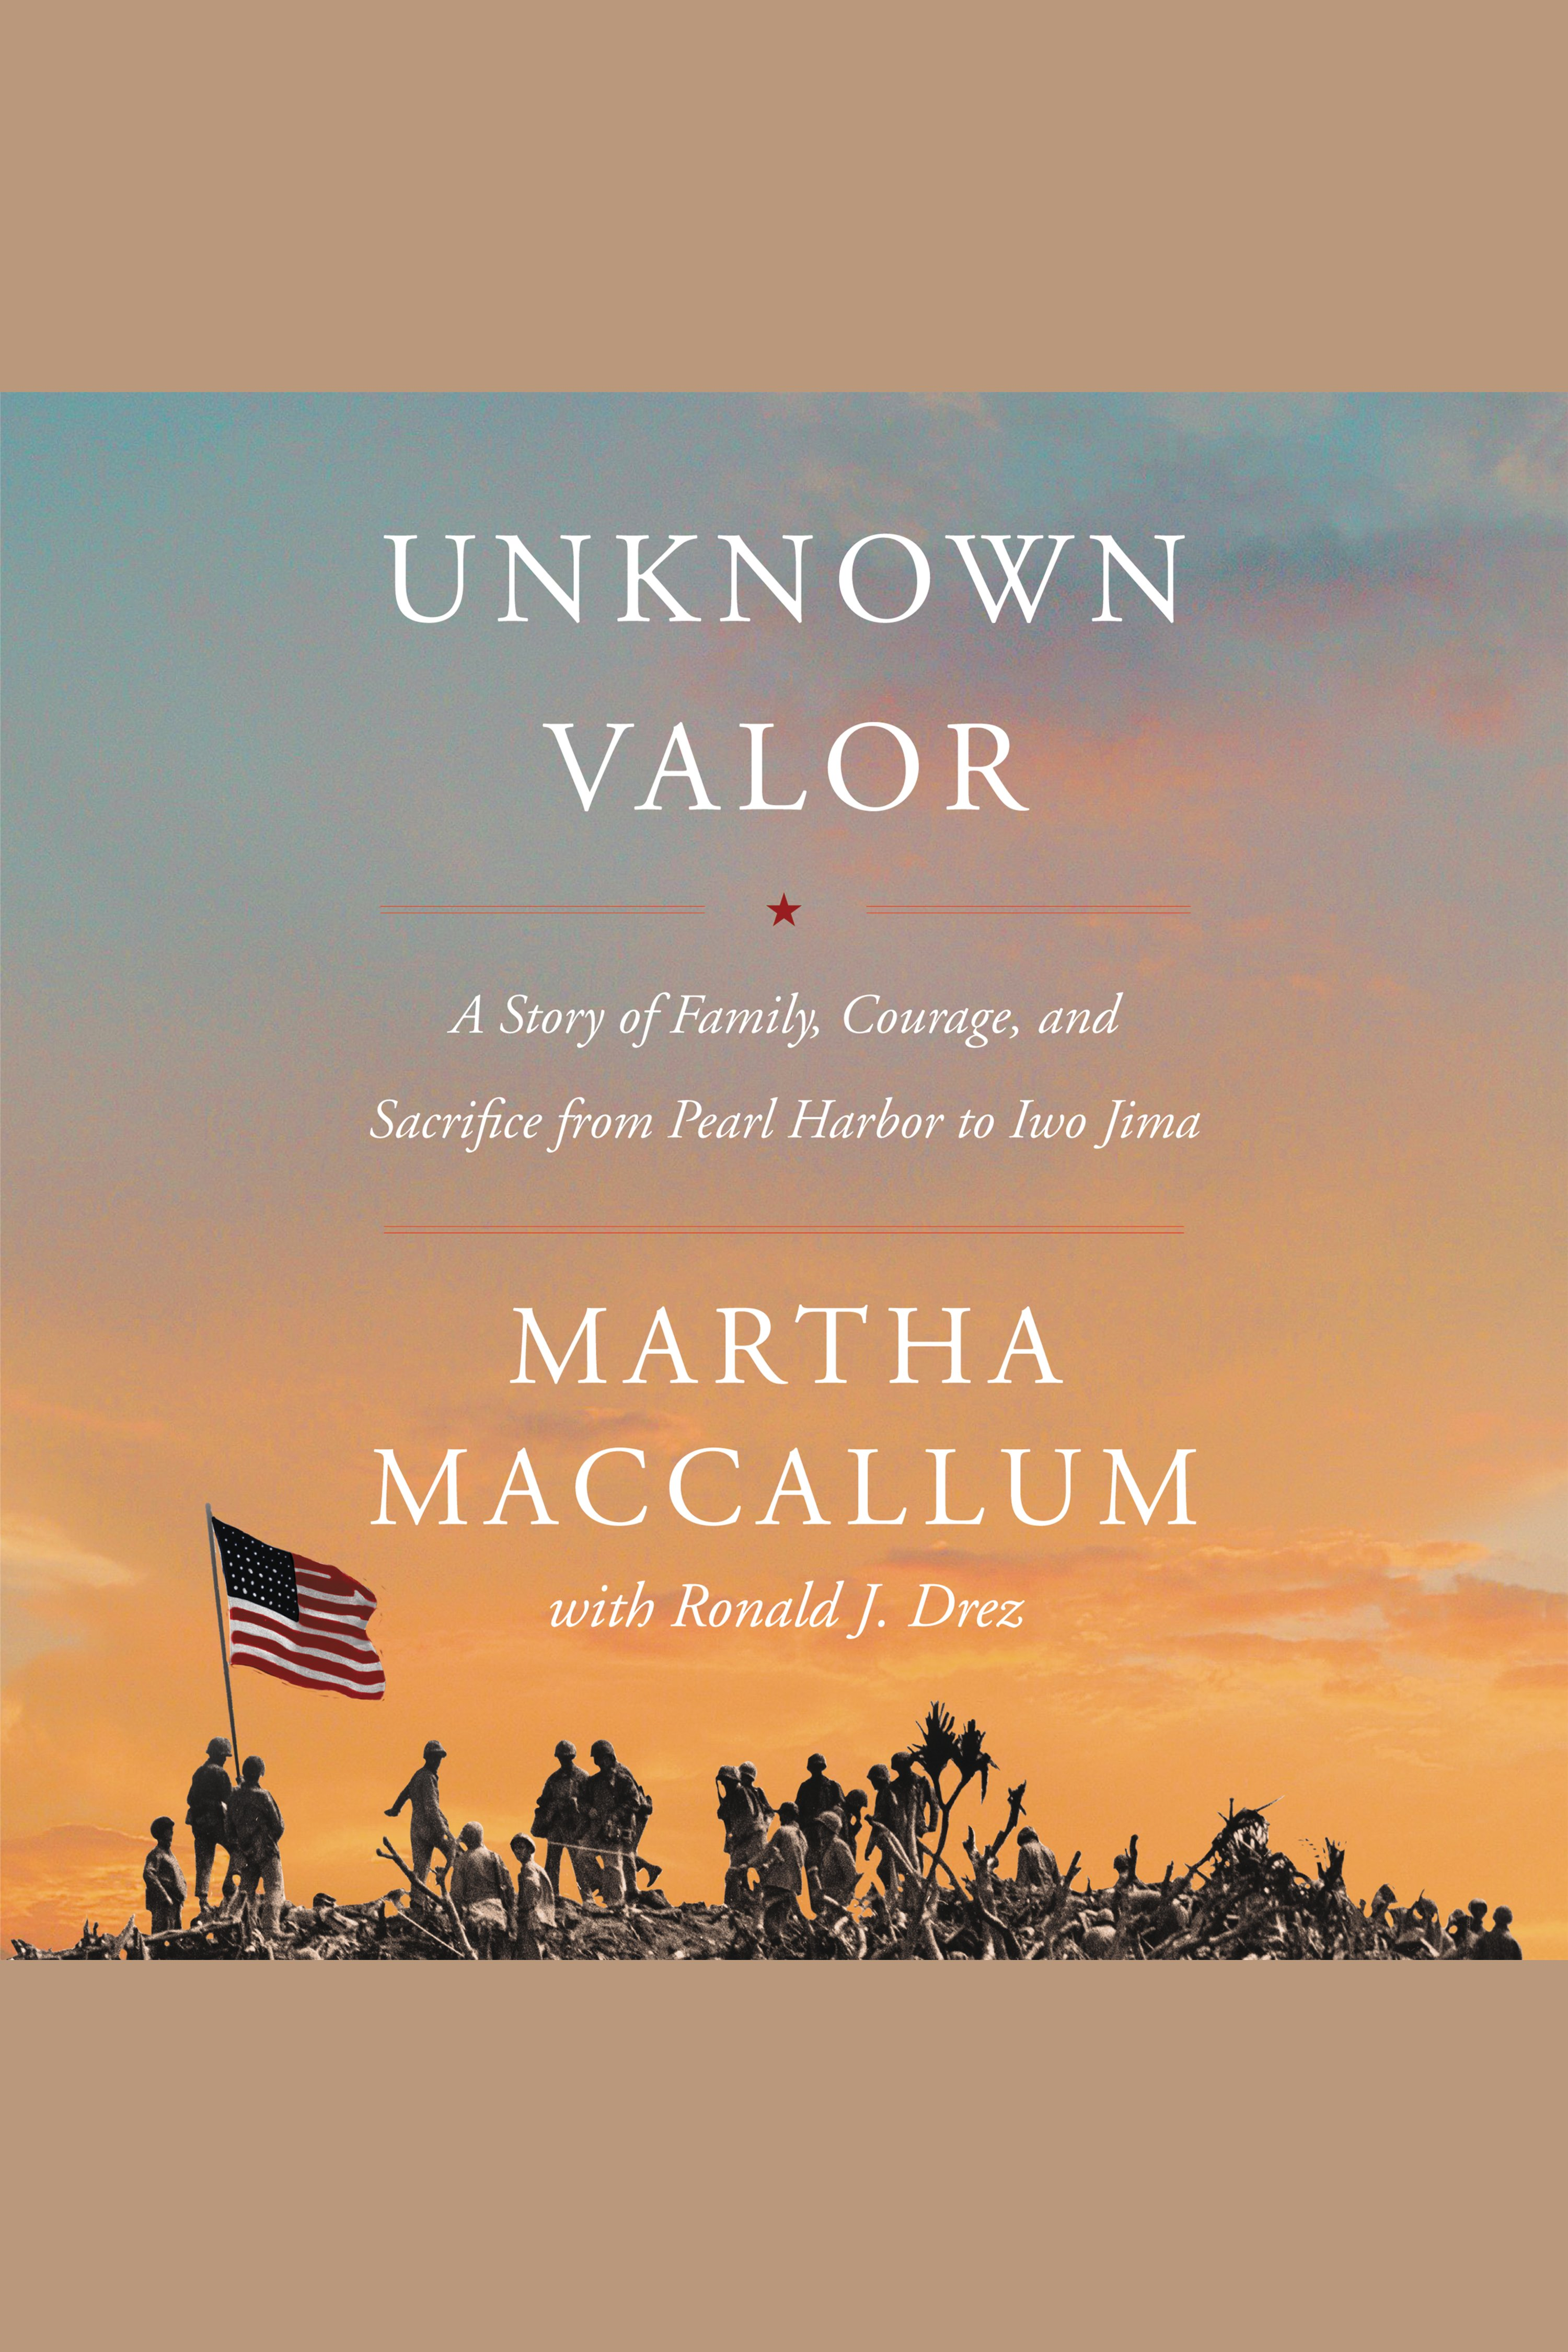 Unknown Valor [electronic resource] : A Story of Family, Courage, and Sacrifice from Pearl Harbor to Iwo Jima